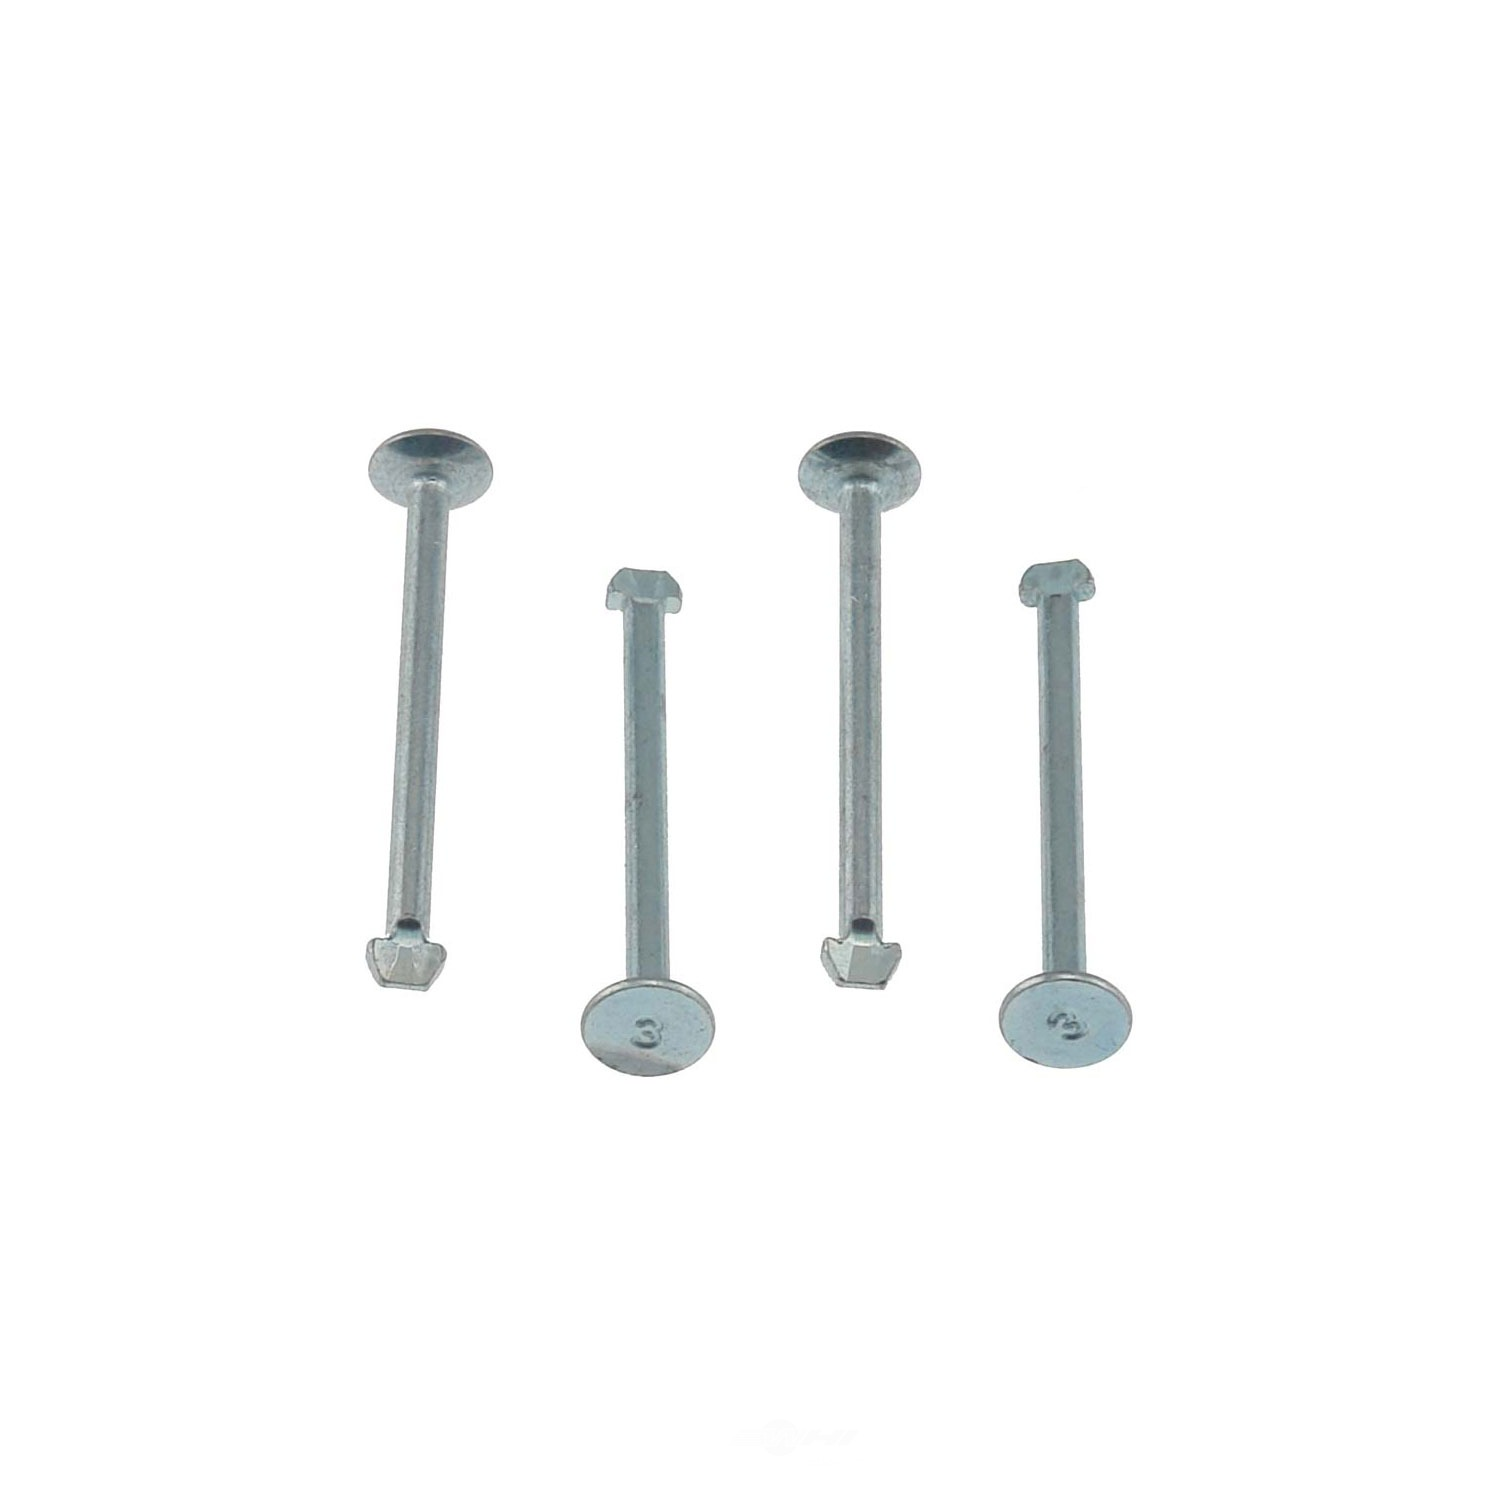 CARLSON QUALITY BRAKE PARTS - Brake Spring Hold Down Pin - CRL H1104-2